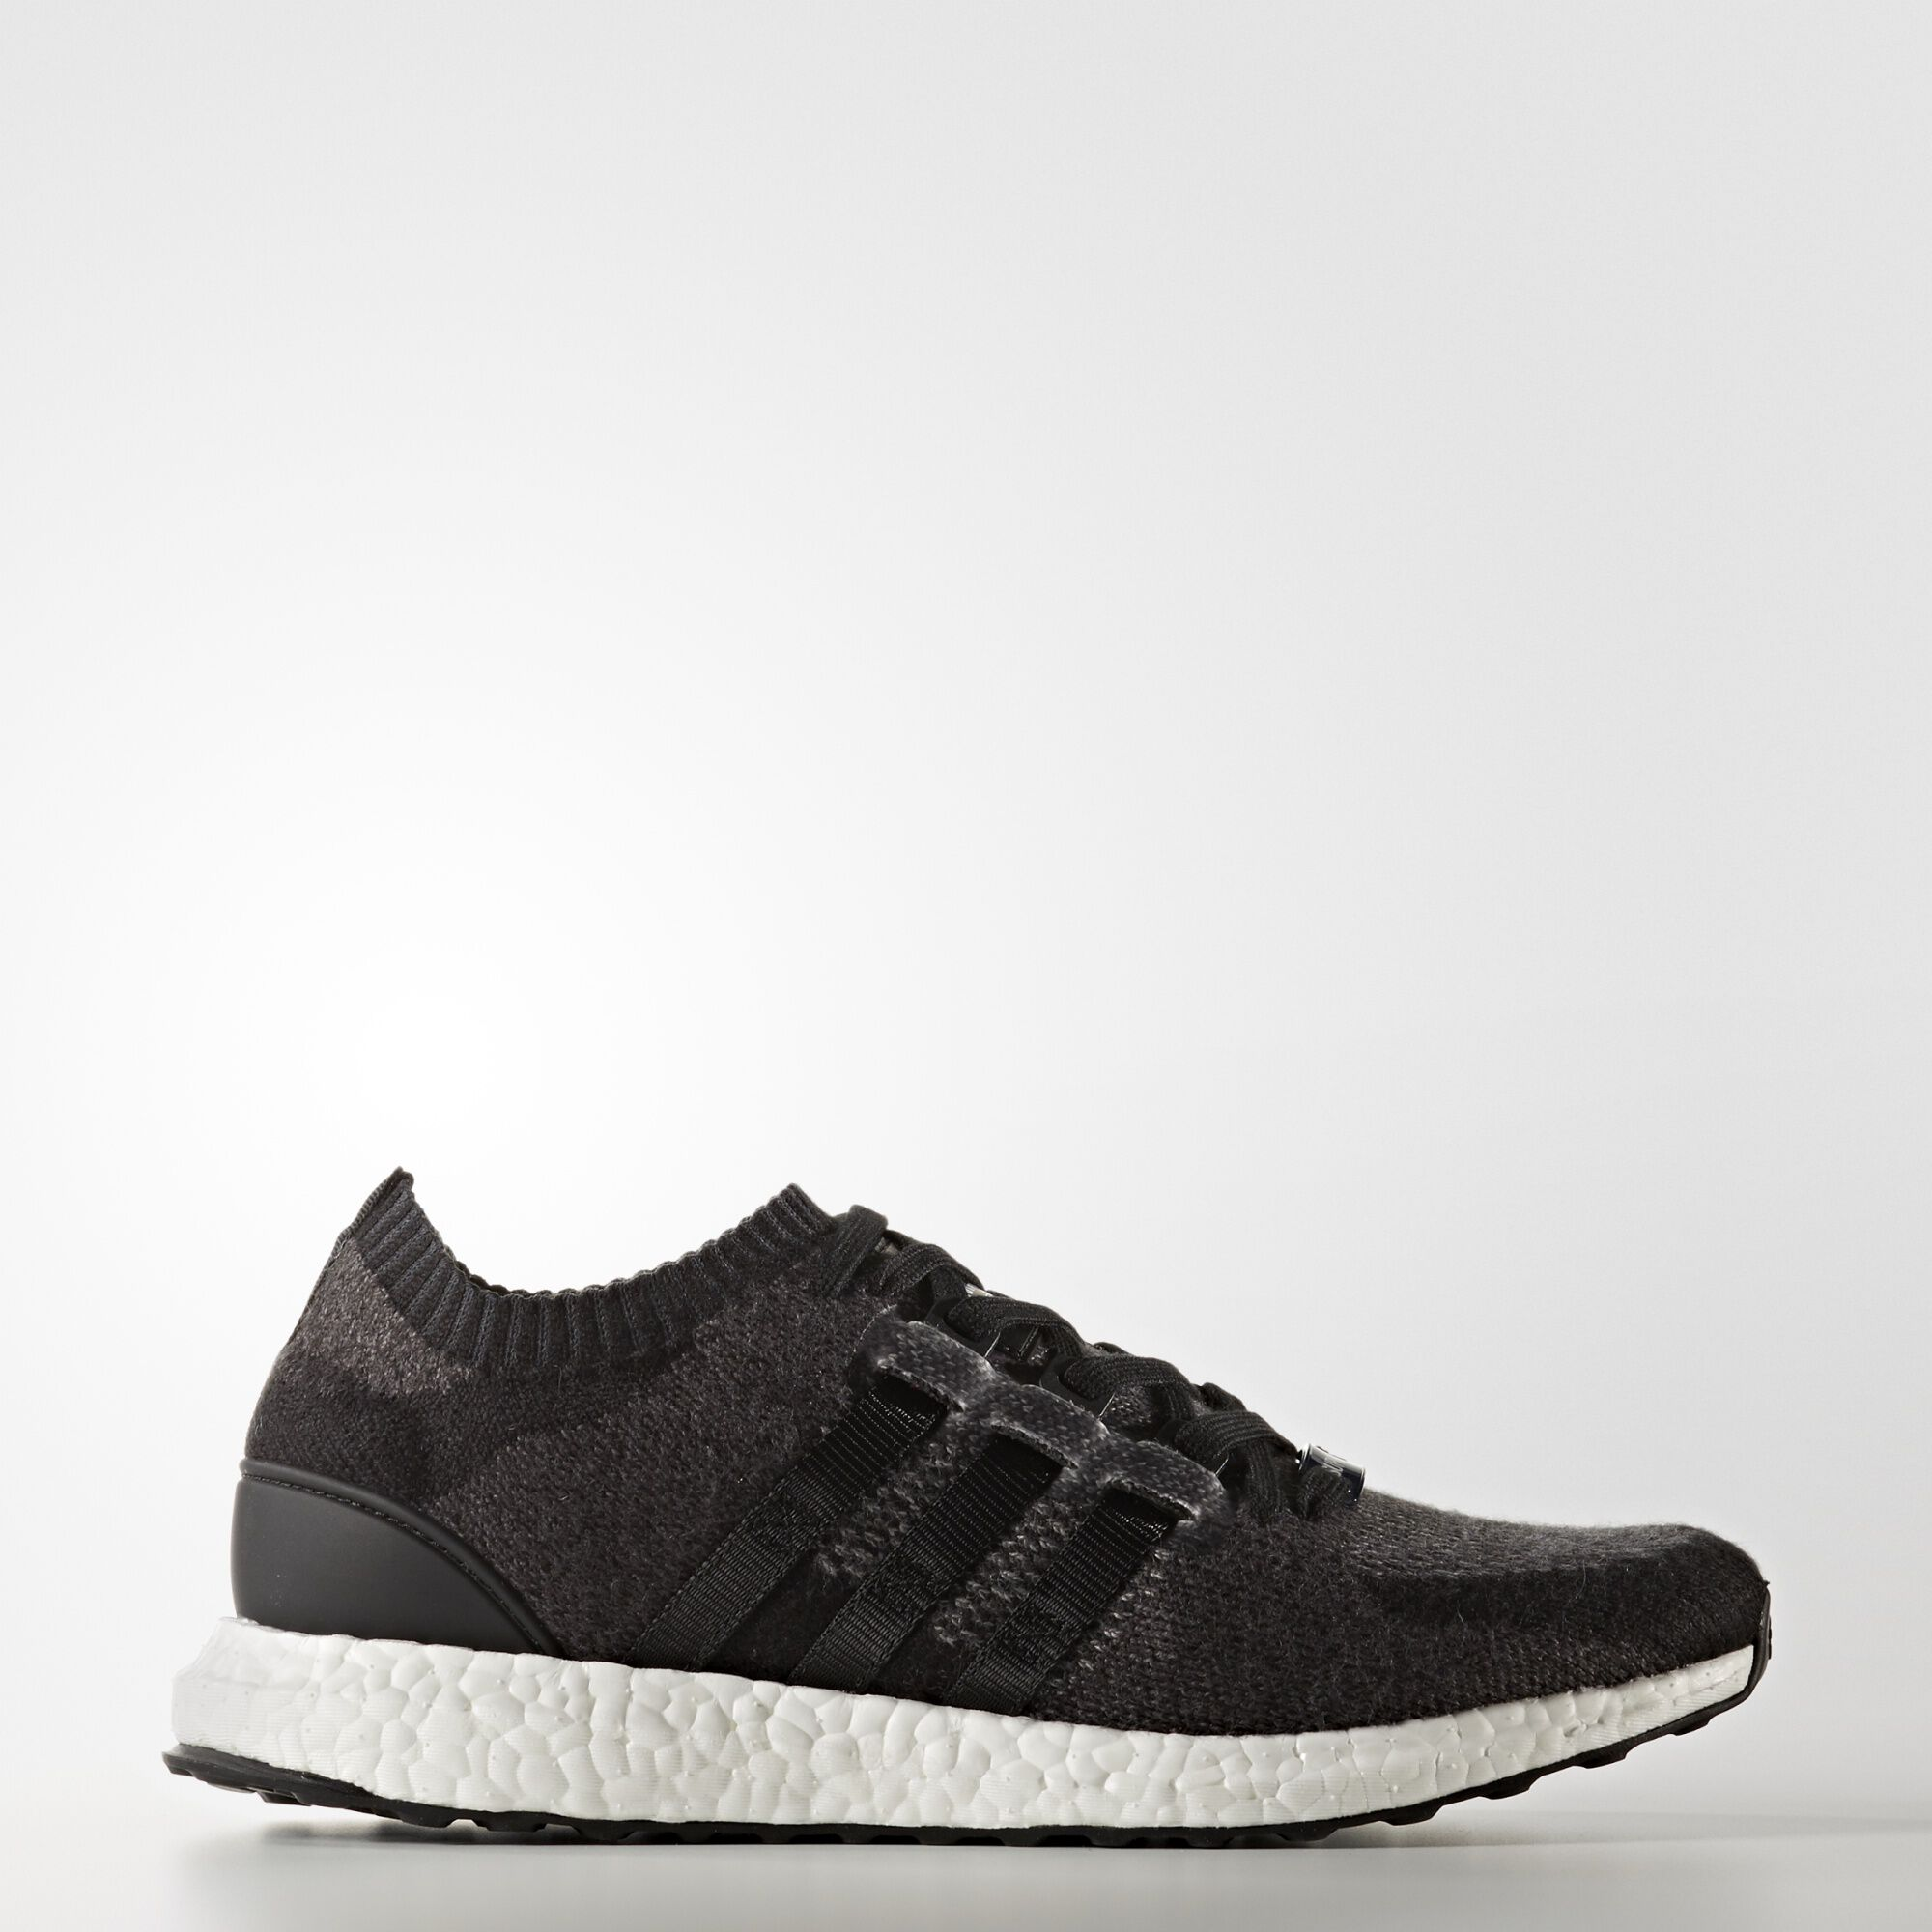 ADIDAS EQUIPMENT RUNNING SUPPORT 93 M Black Red White